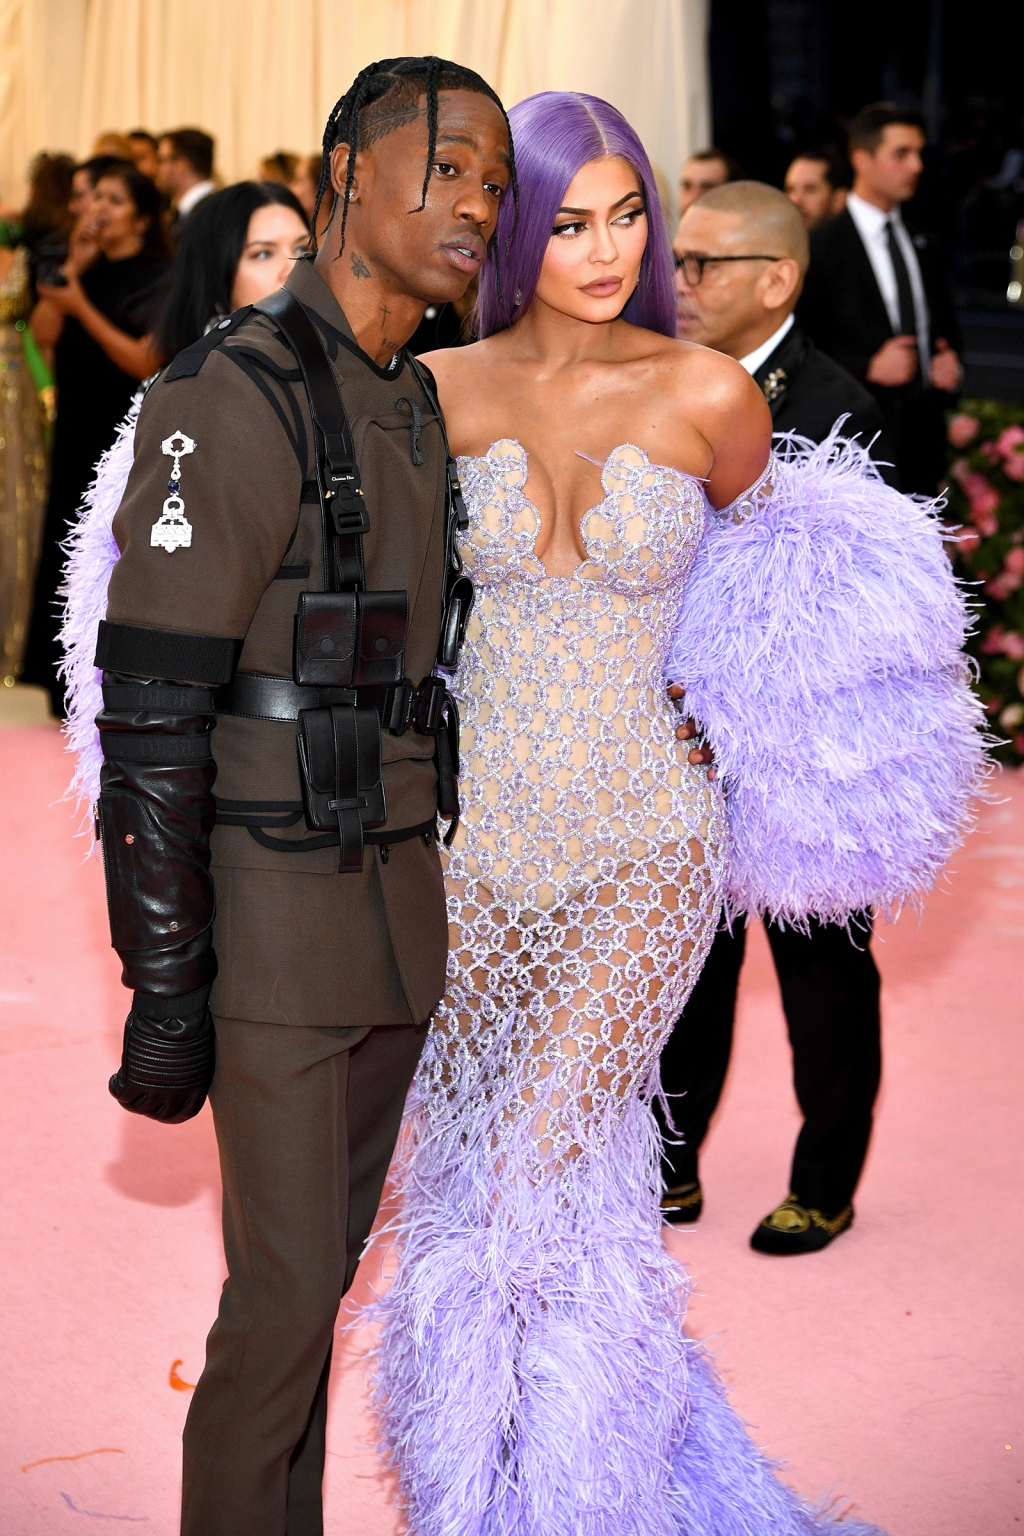 Travis Scott (L) and Kylie Jenner attend The 2019 Met Gala Celebrating Camp: Notes on Fashion at Metropolitan Museum of Art on May 06, 2019 in New York City.